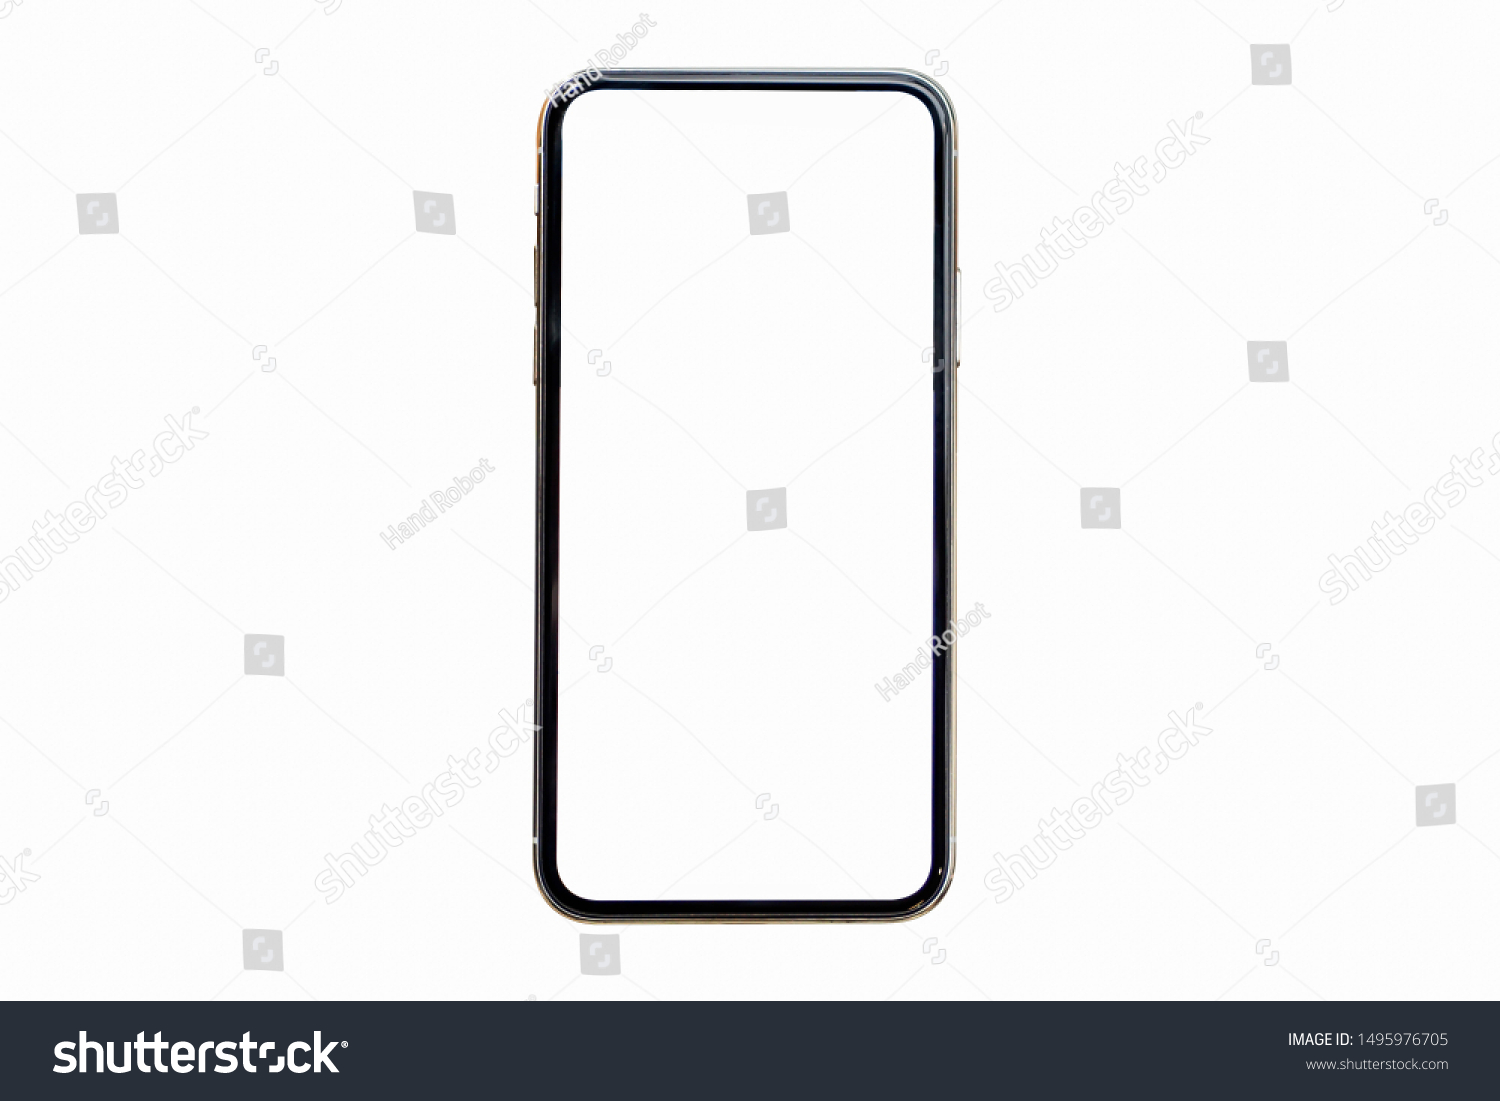 Smartphone similar to iphoneX xs max with blank white screen for Infographic Global Business Marketing investment Plan, mockup model similar to iPhone x isolated illustration of responsive web design #1495976705